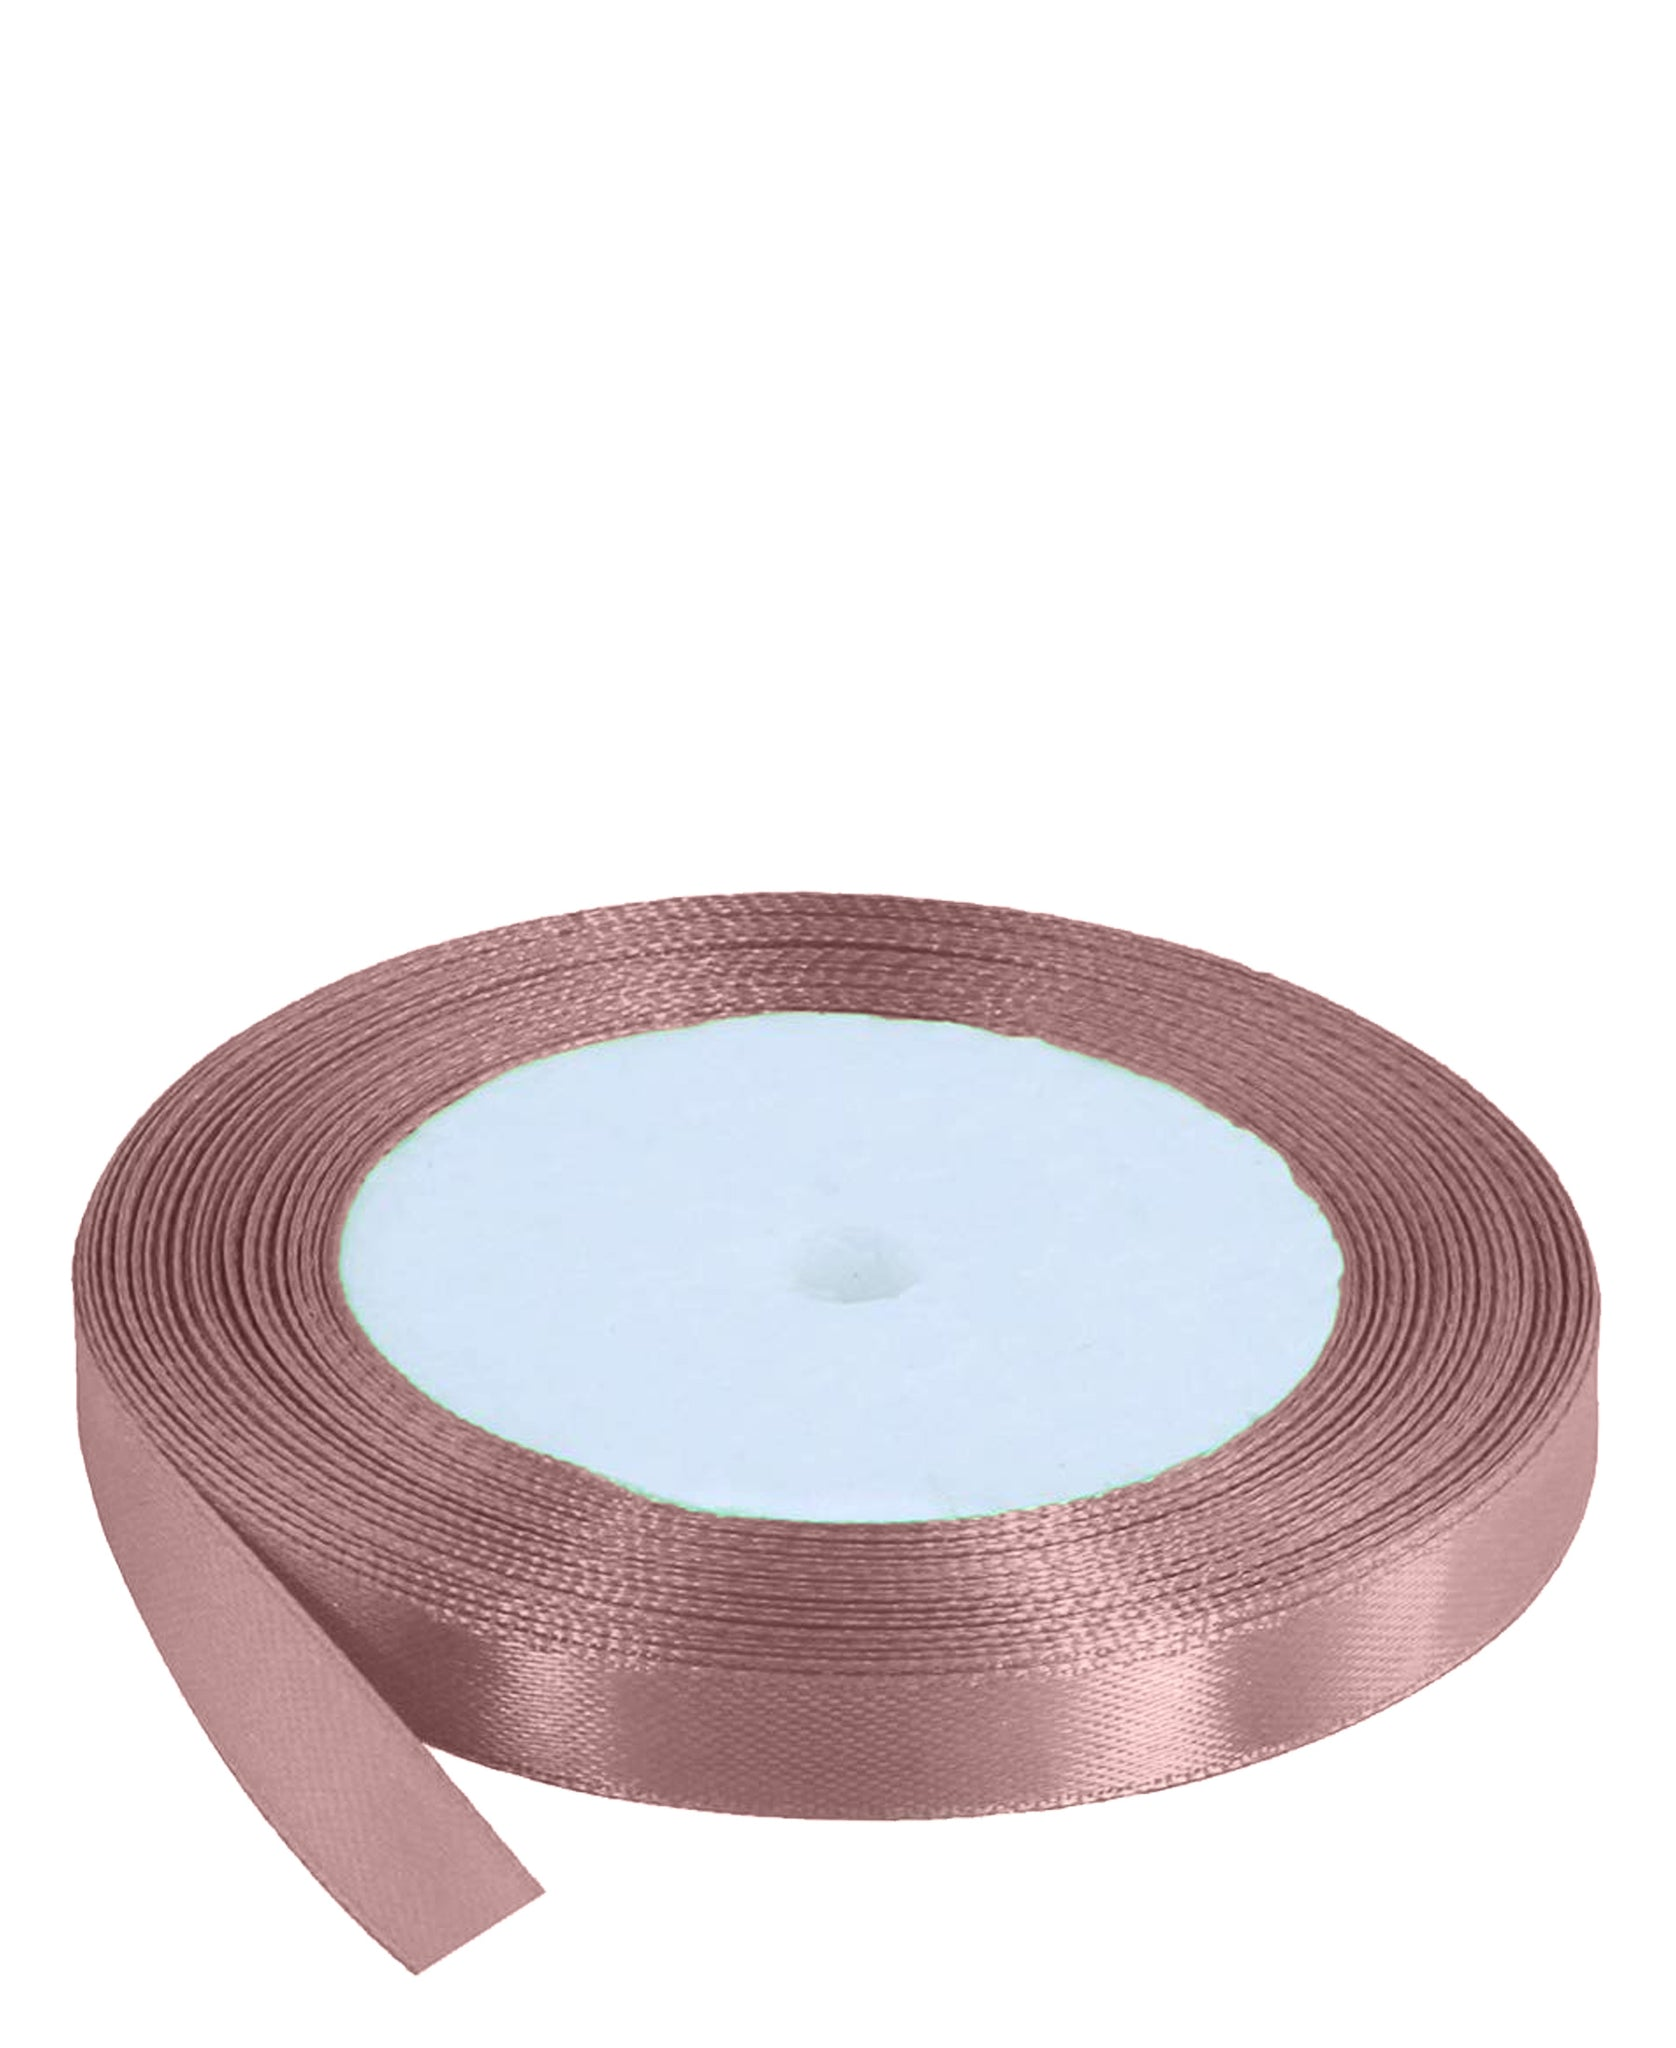 Satin Ribbon - Beige